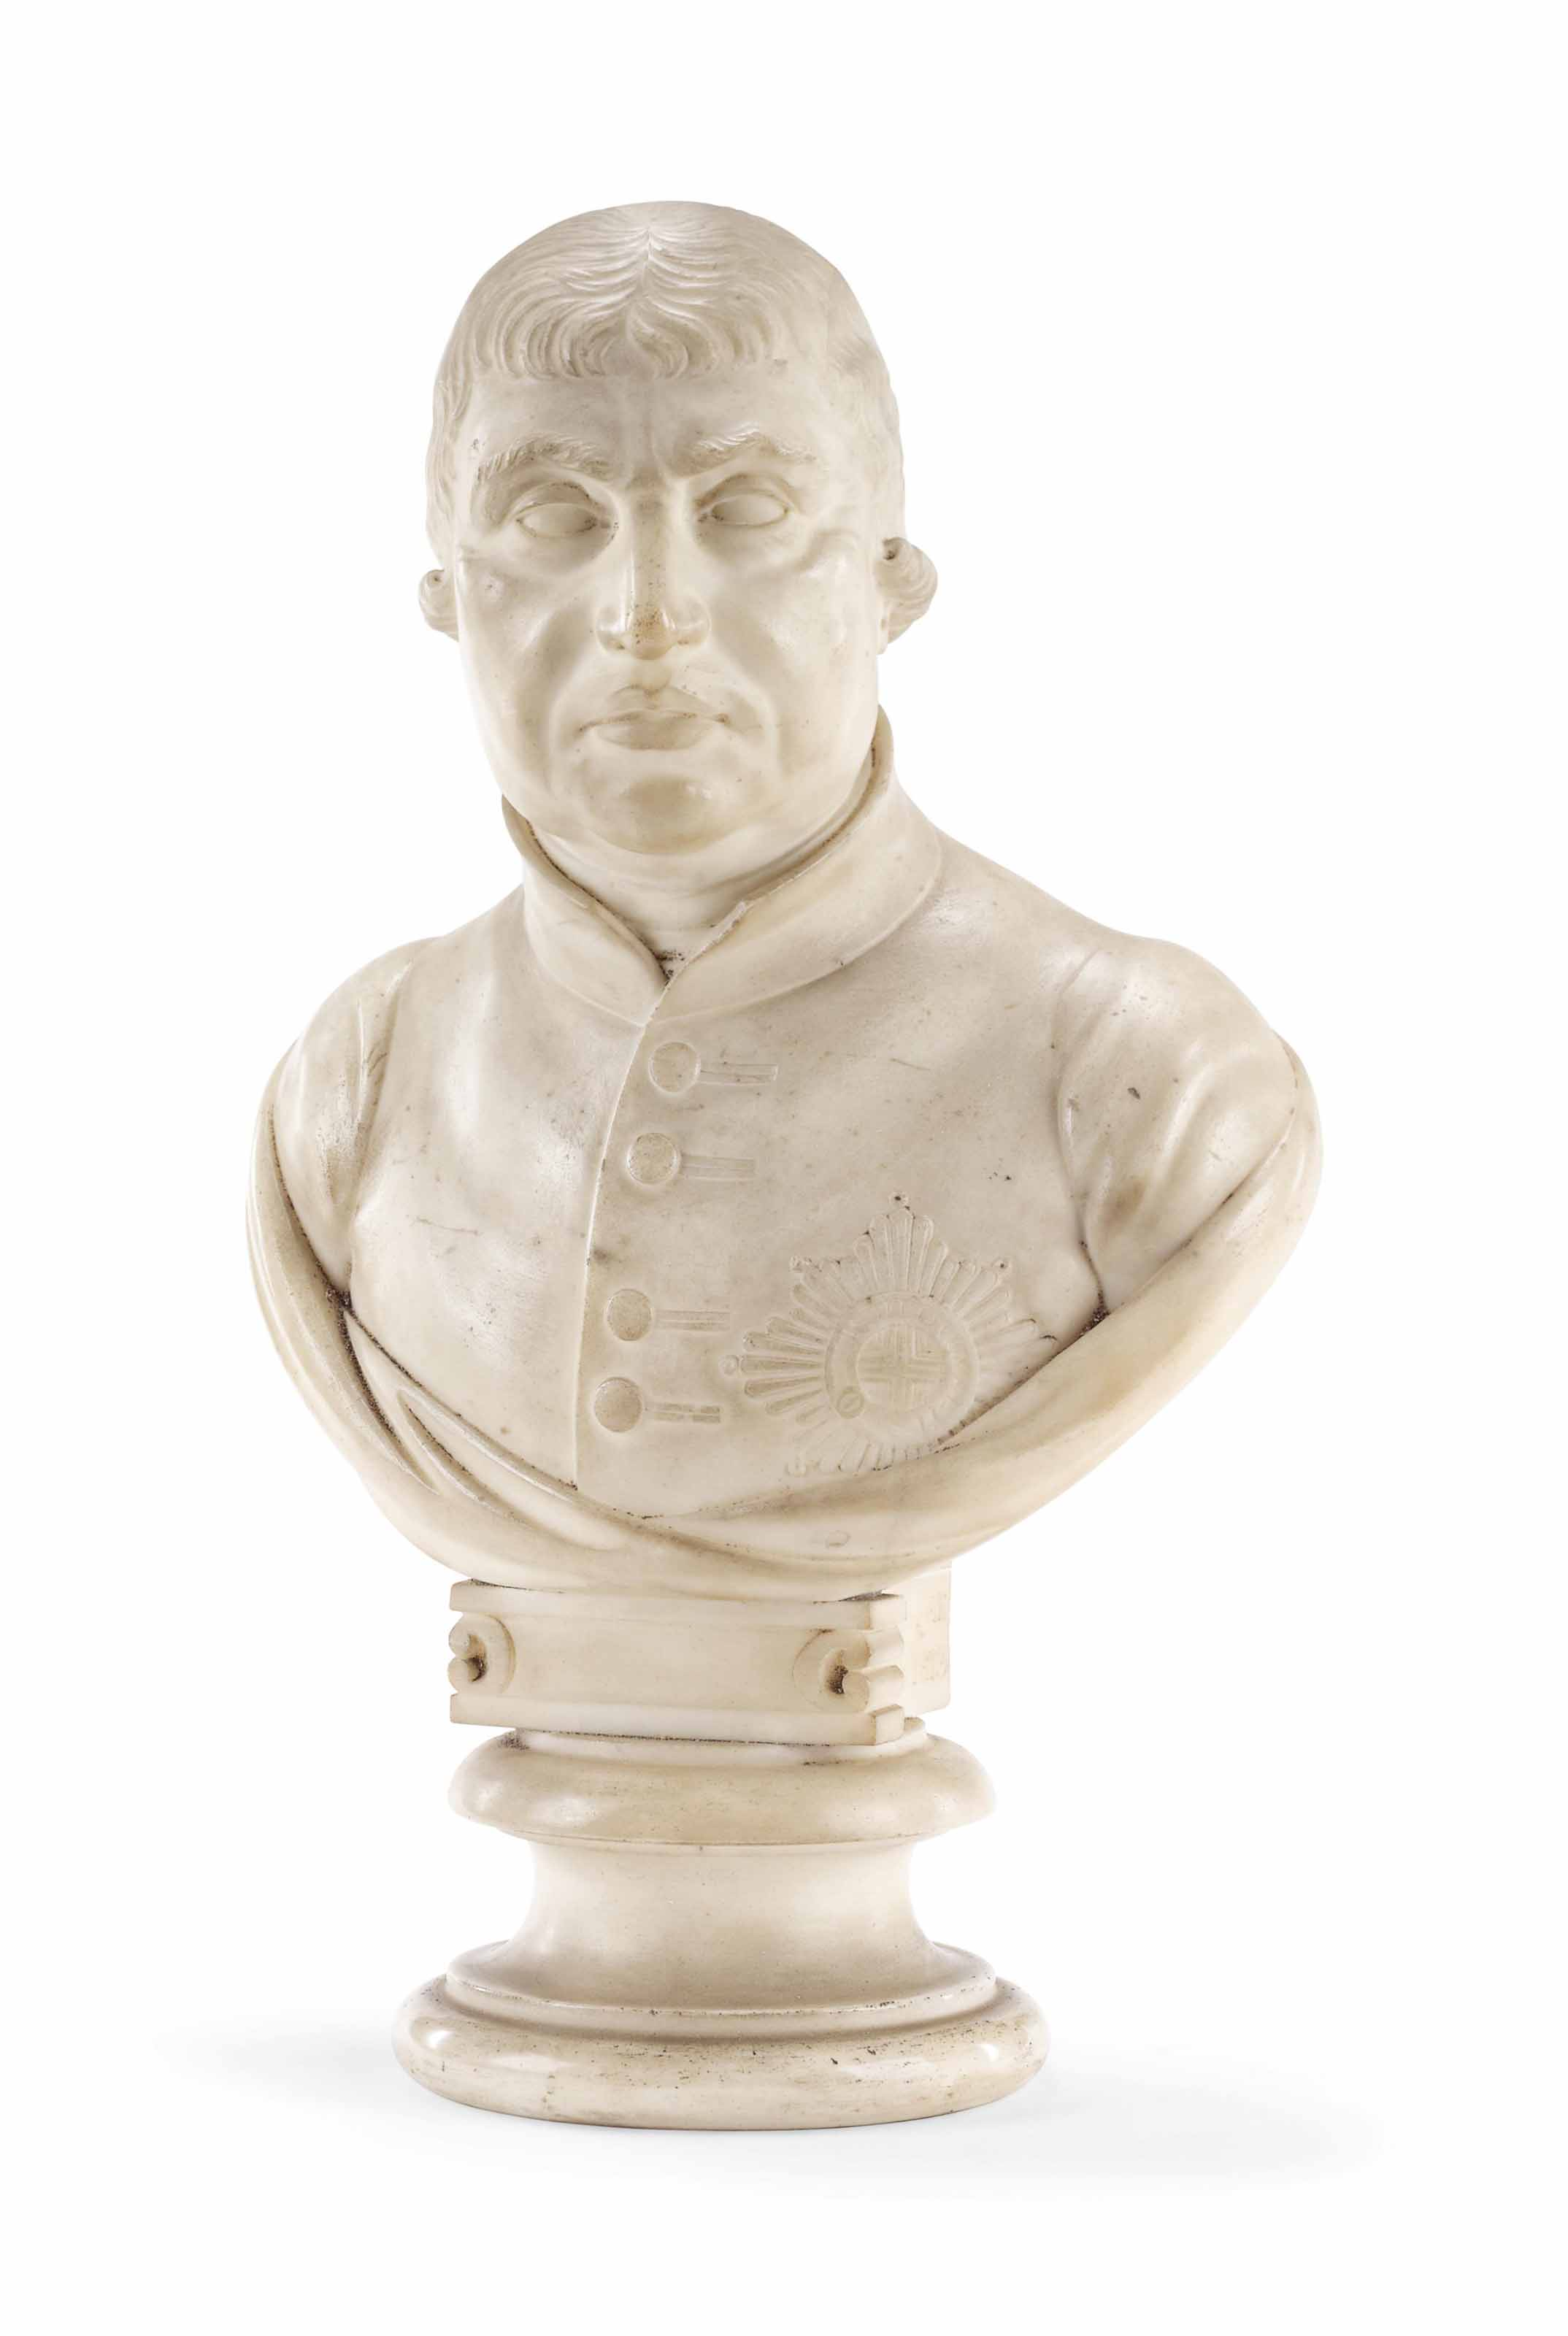 A CARVED MARBLE BUST OF GEORGE III